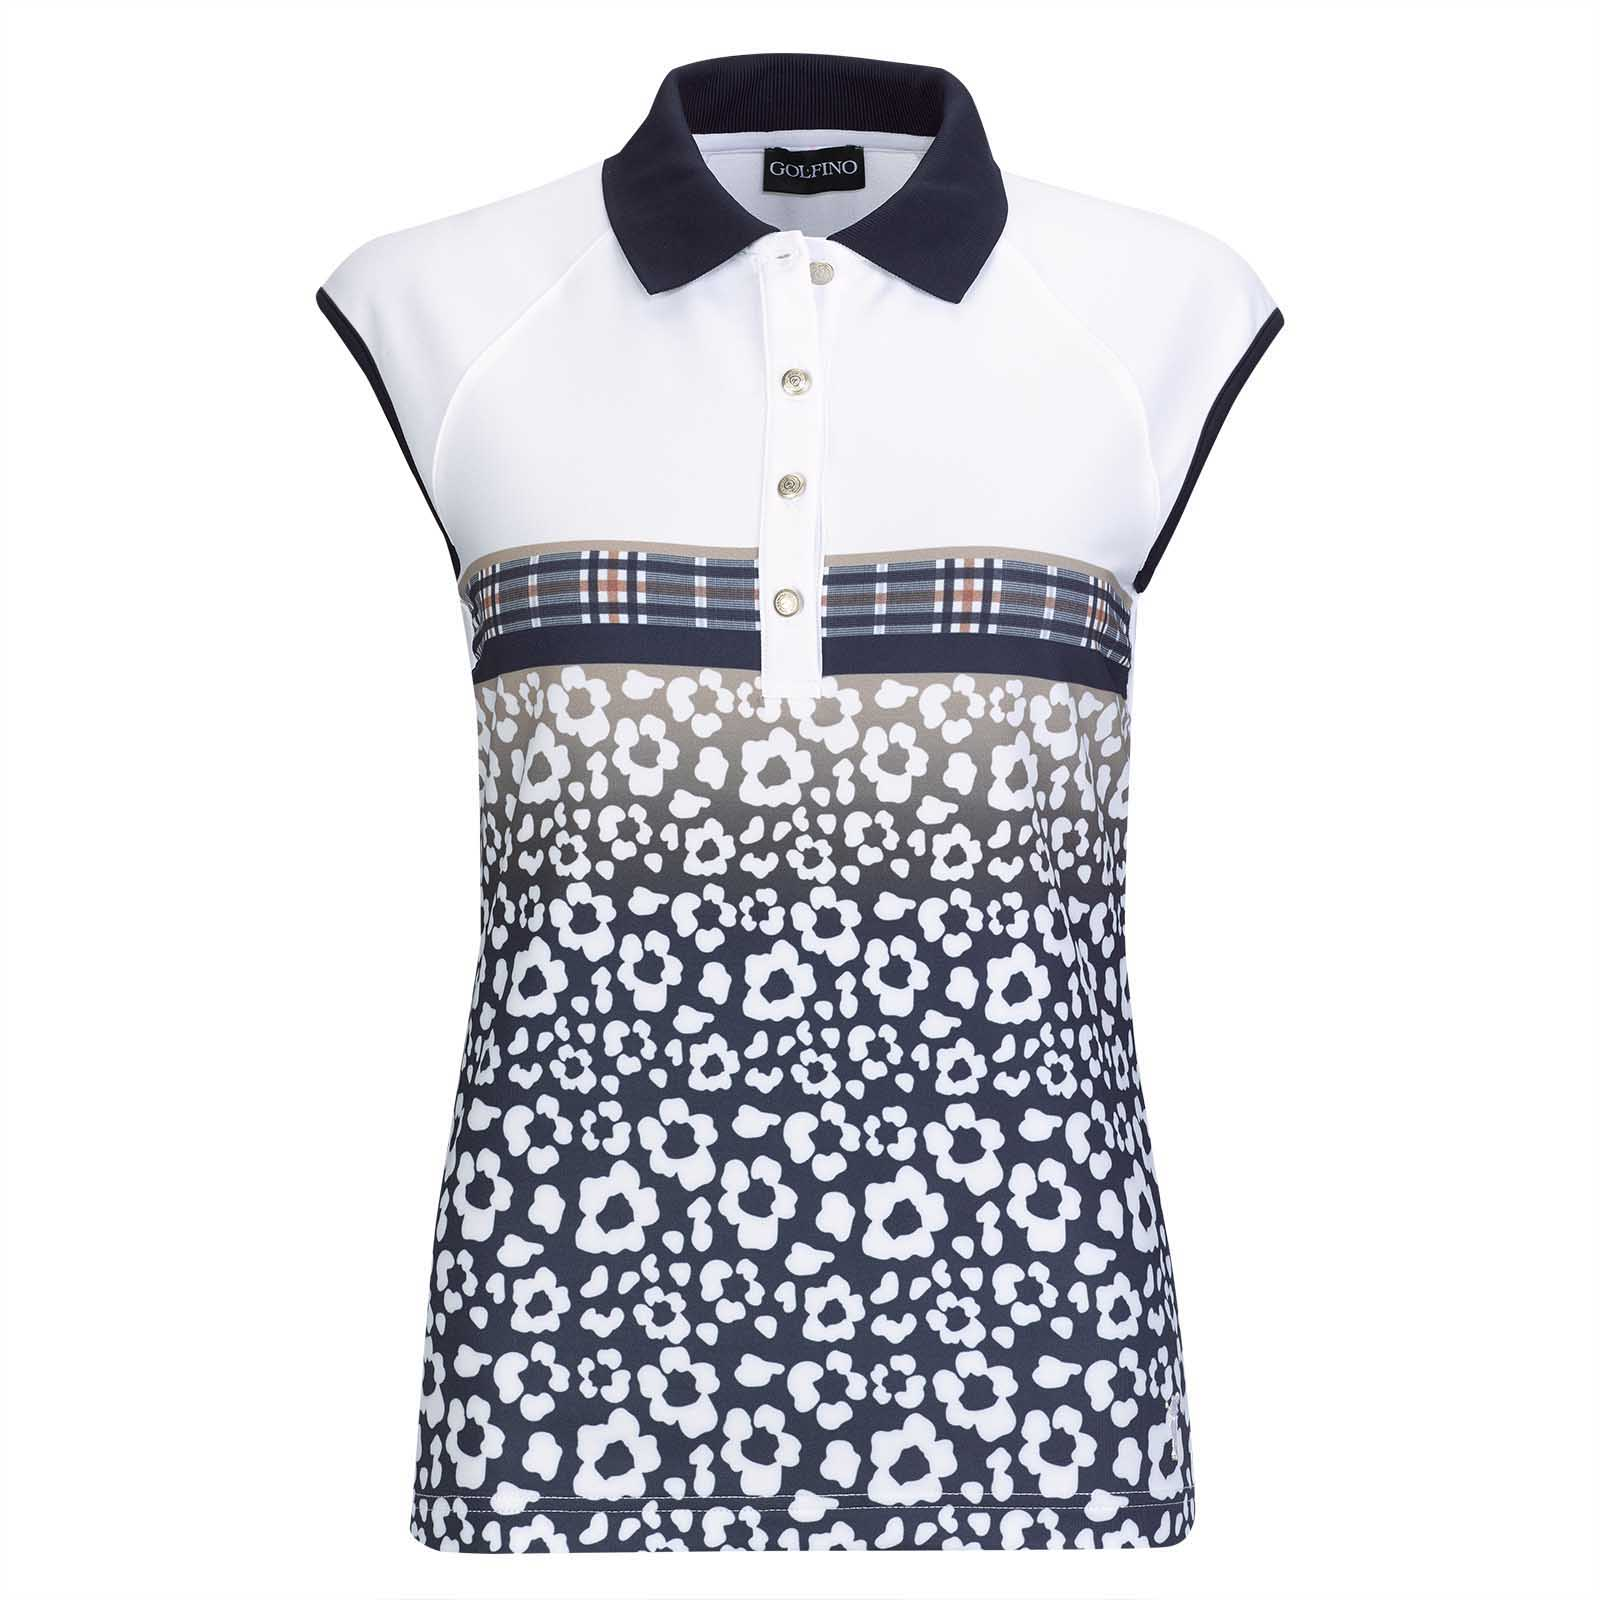 Ladies' sleeveless golf polo with fashionable flower print